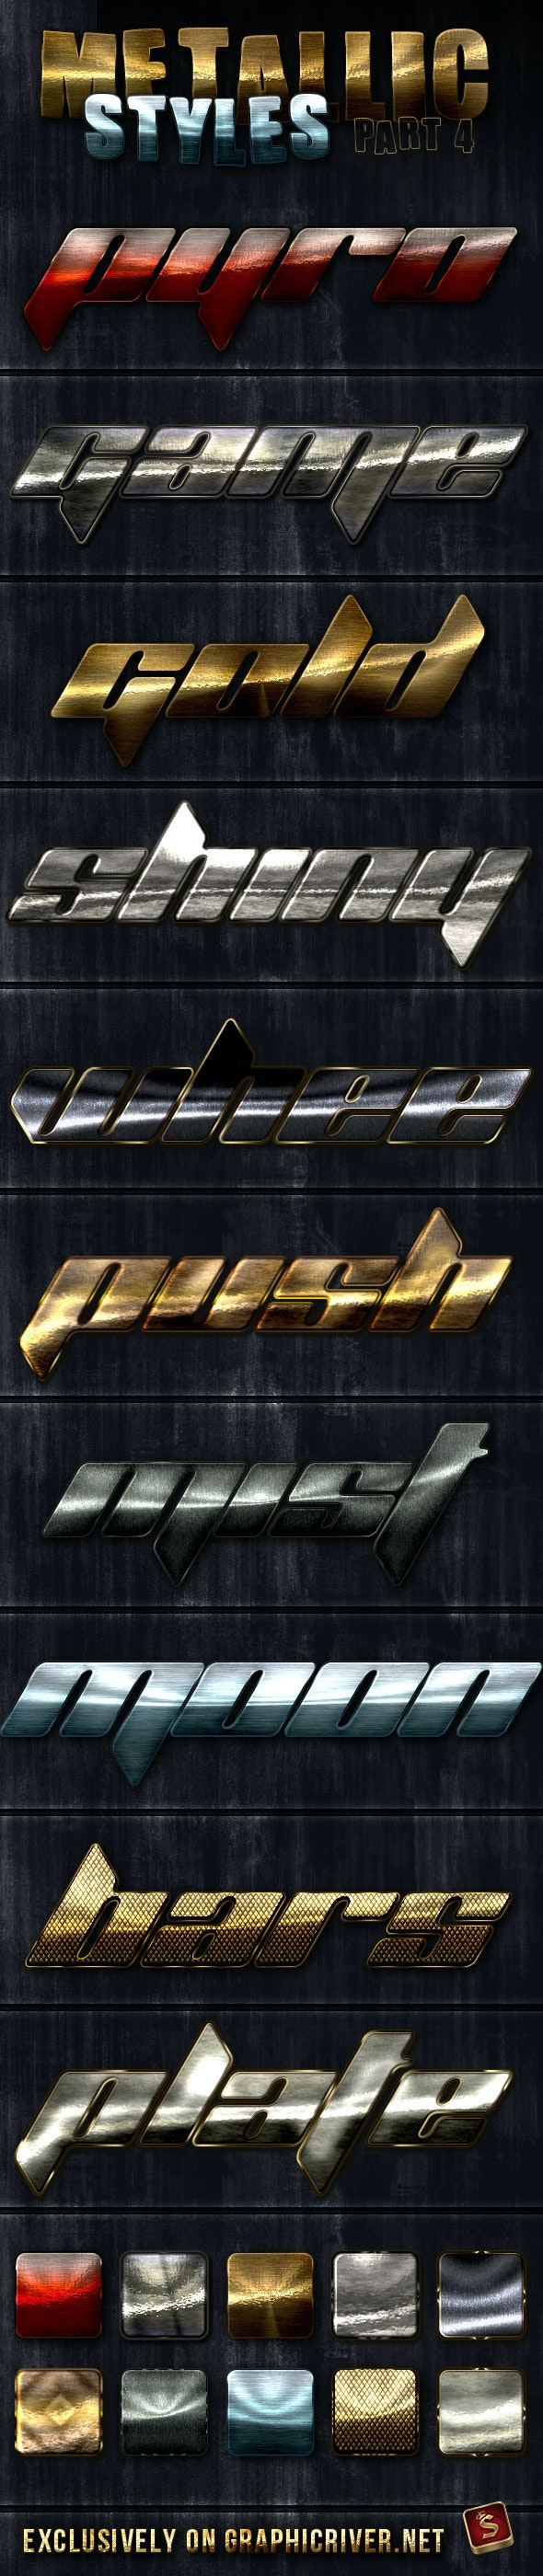 Unique Metallic Styles - Part 4 - Text Effects Styles